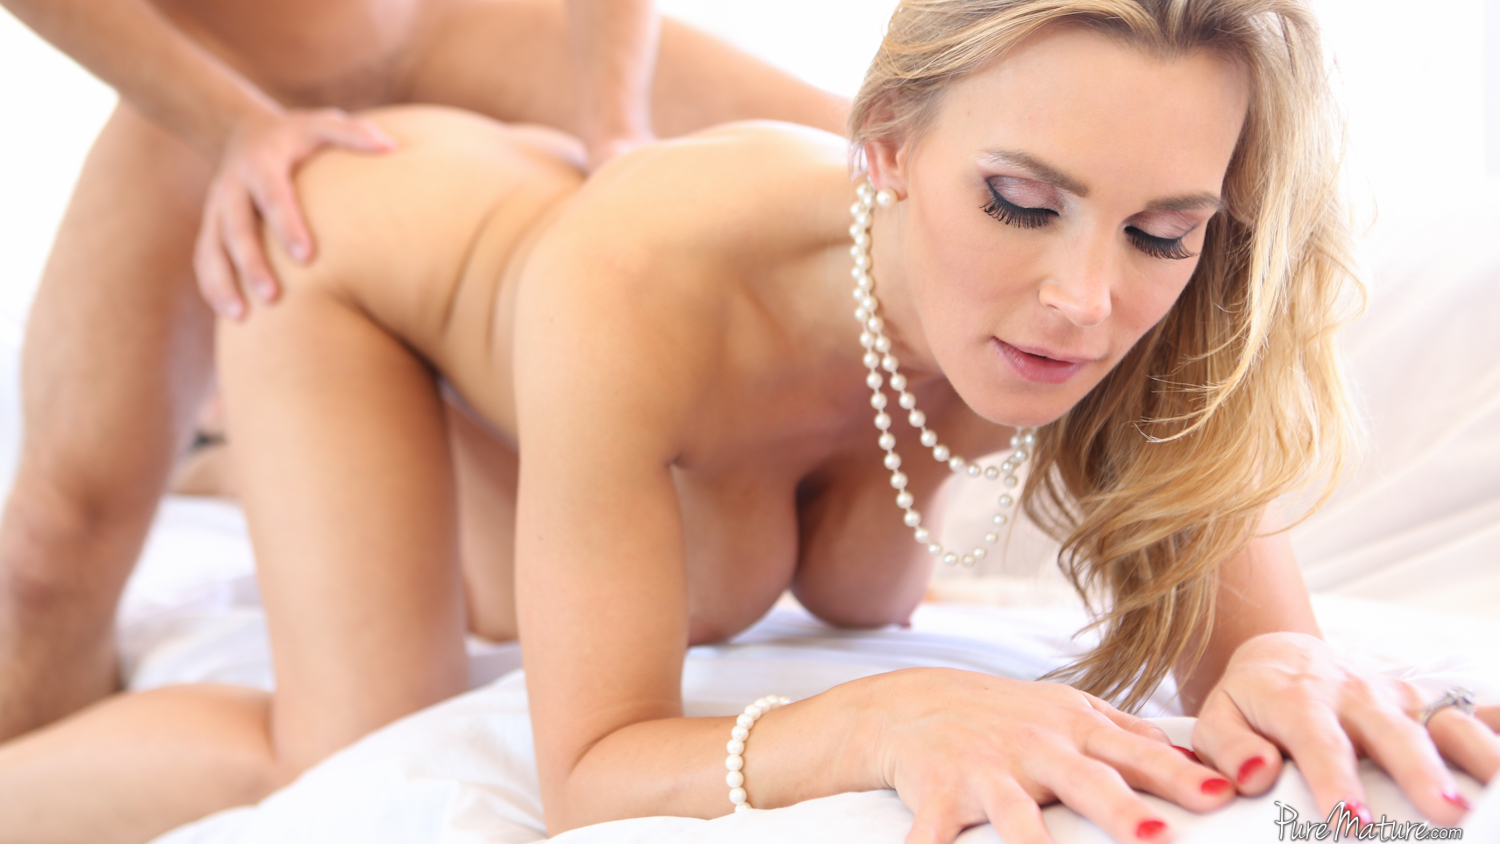 This remarkable Tanya tate hot